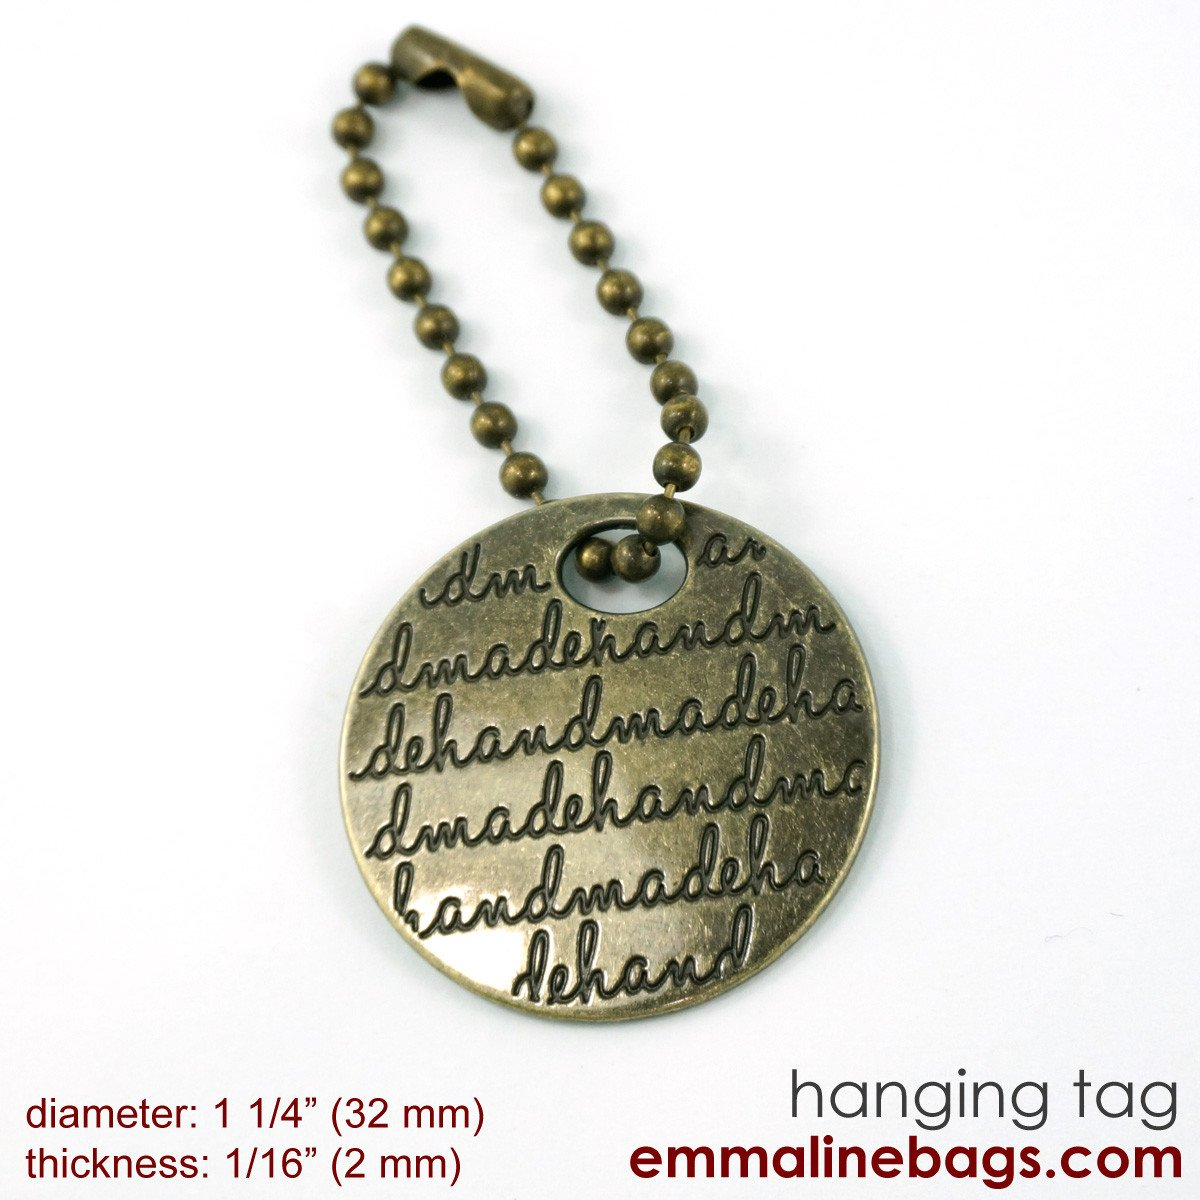 Emmaline - Bag Tag For Purses  - Antique Brass with Blk letters